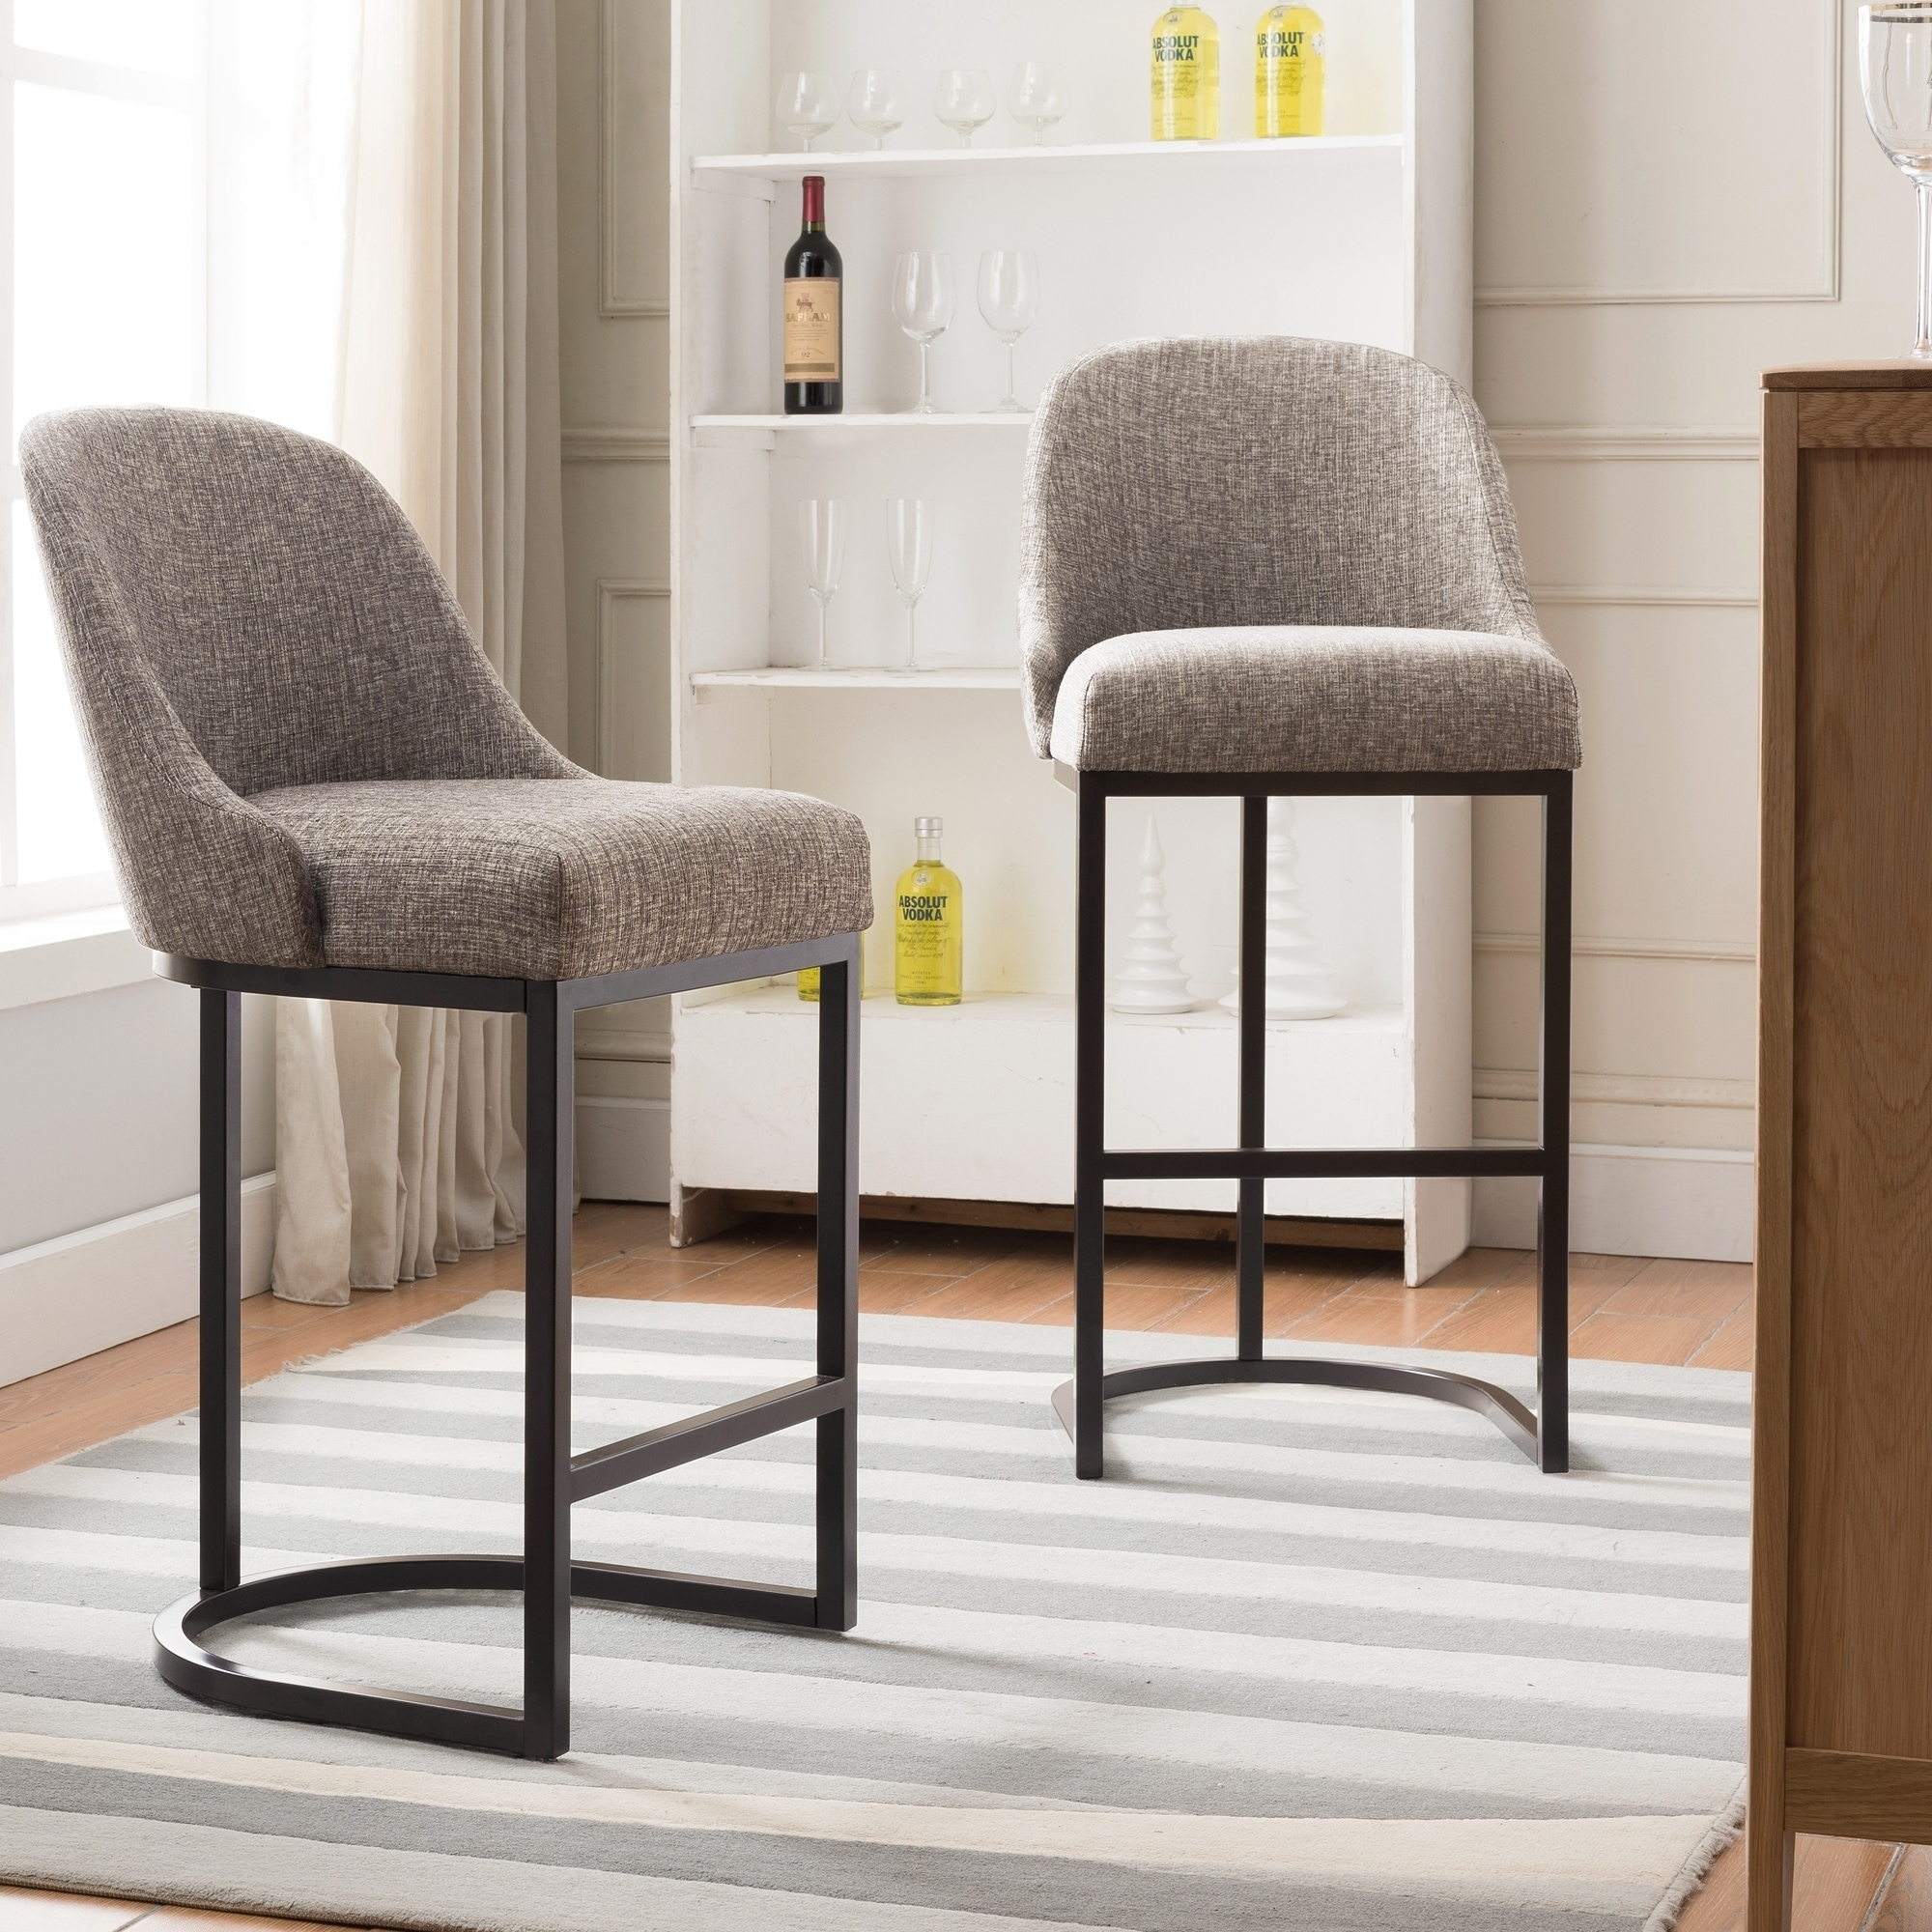 Fantastic Barrelback Gray Linen Counter Stool With Espresso Metal Base Set Of 2 Gmtry Best Dining Table And Chair Ideas Images Gmtryco